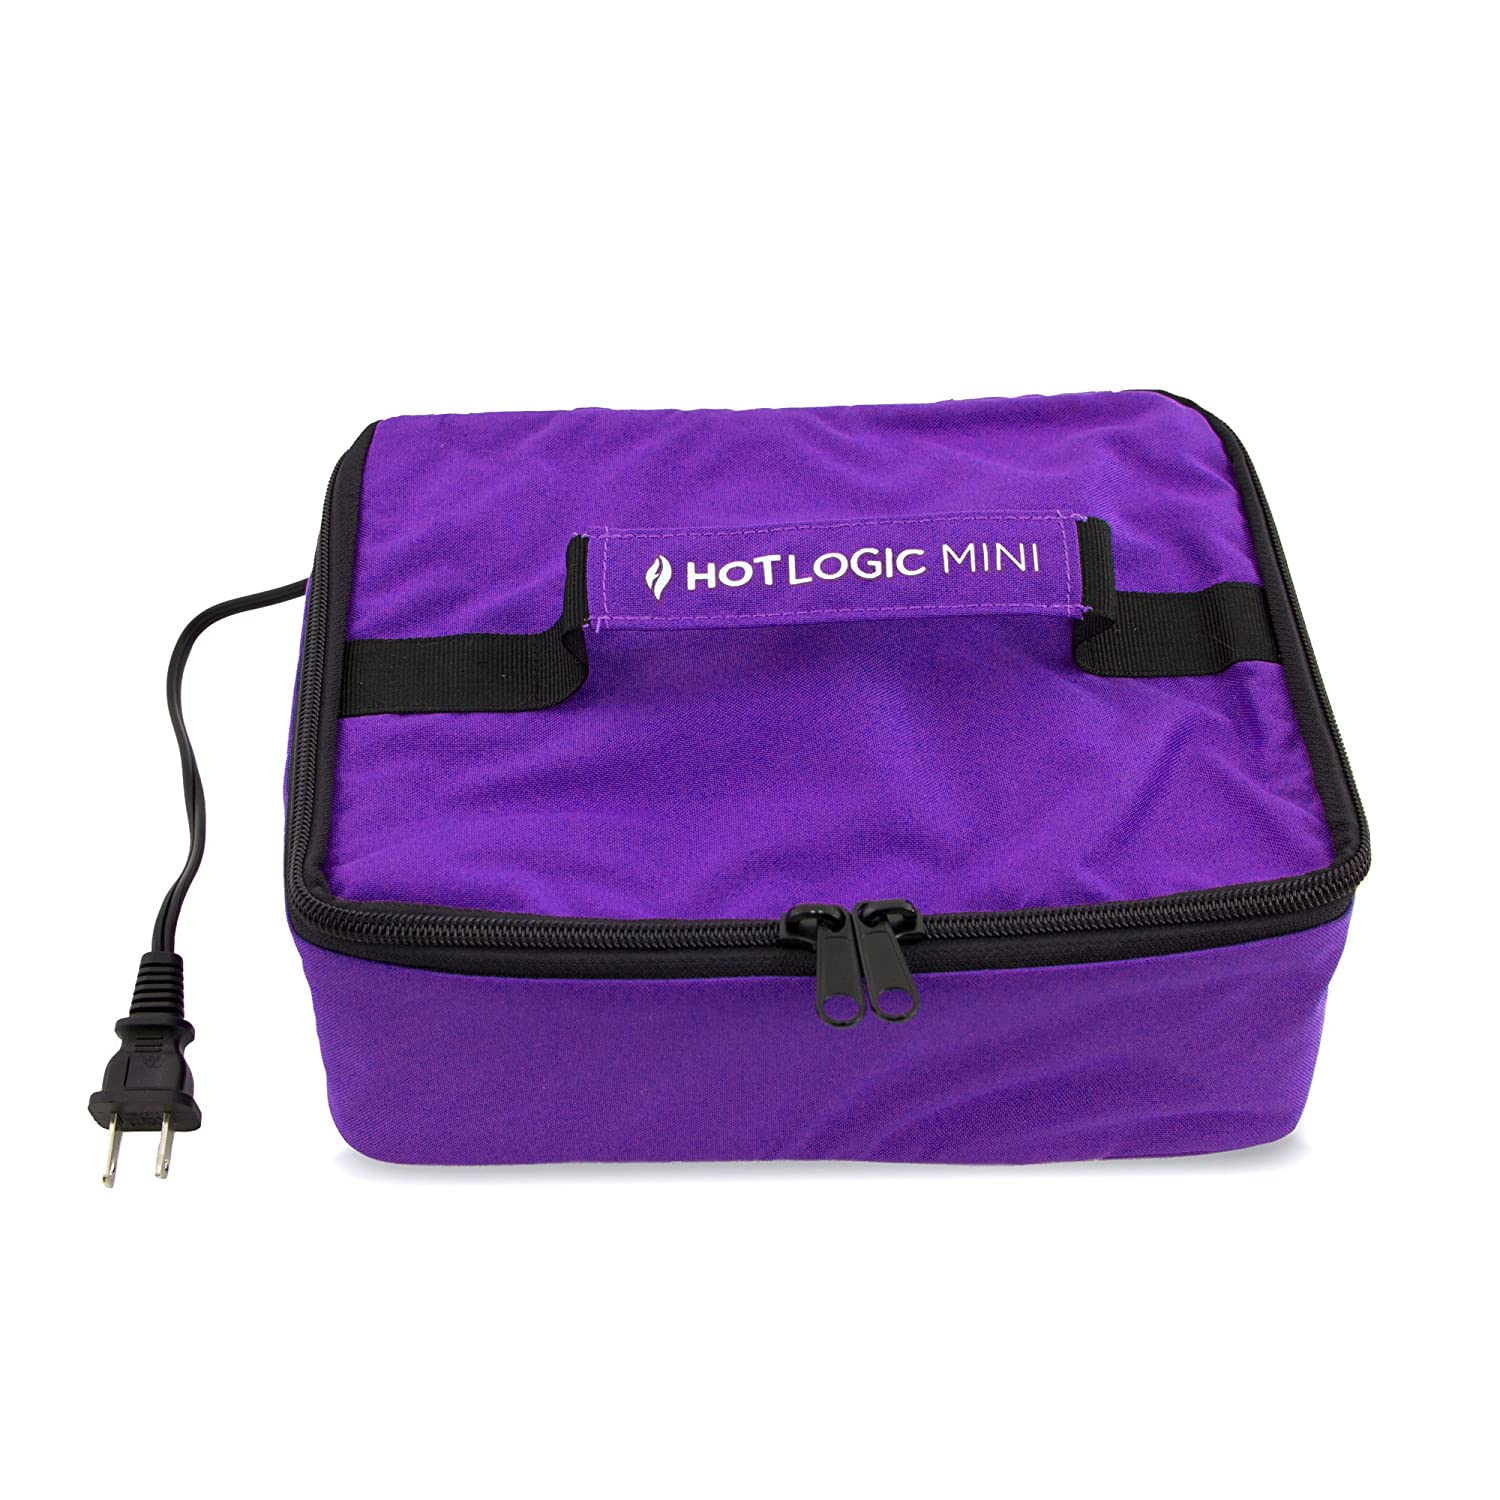 HotLogic Mini Personal Portable Oven, Purple